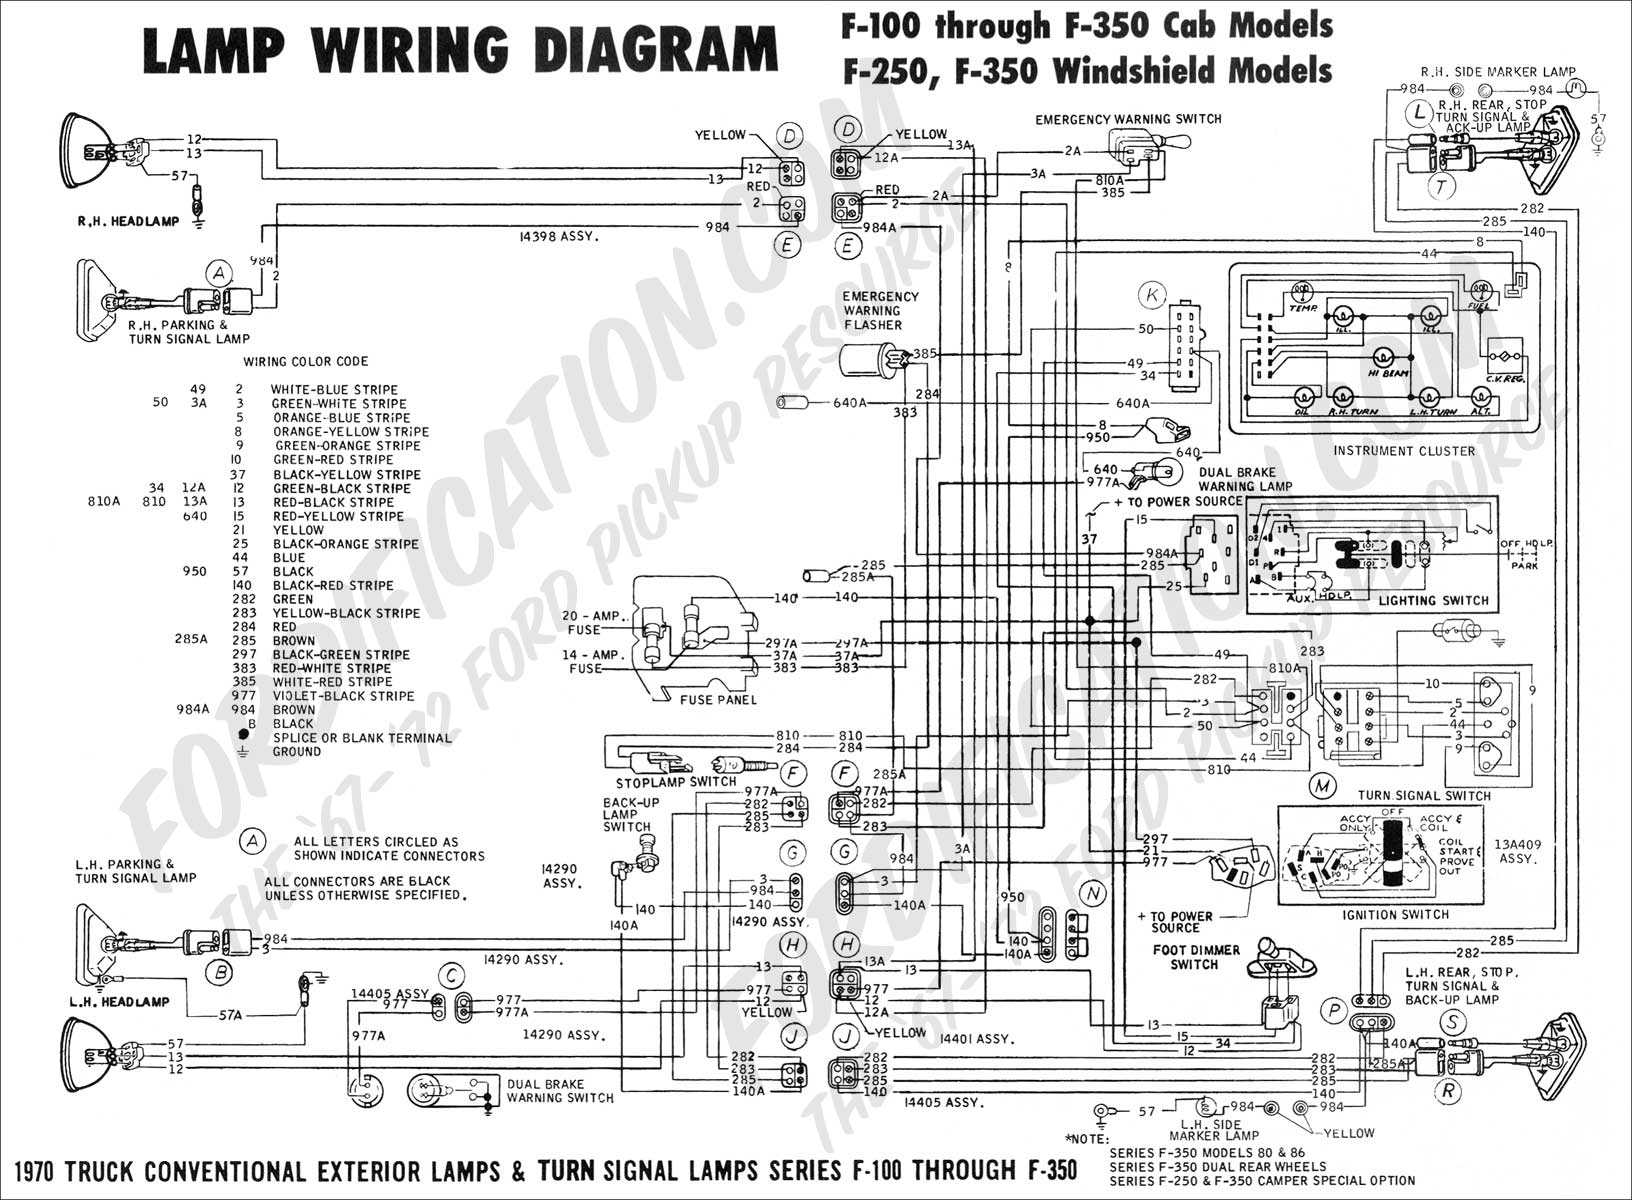 F250 Trailer Wiring Harness | Wiring Diagram - 2013 Ford F250 Trailer Plug Wiring Diagram